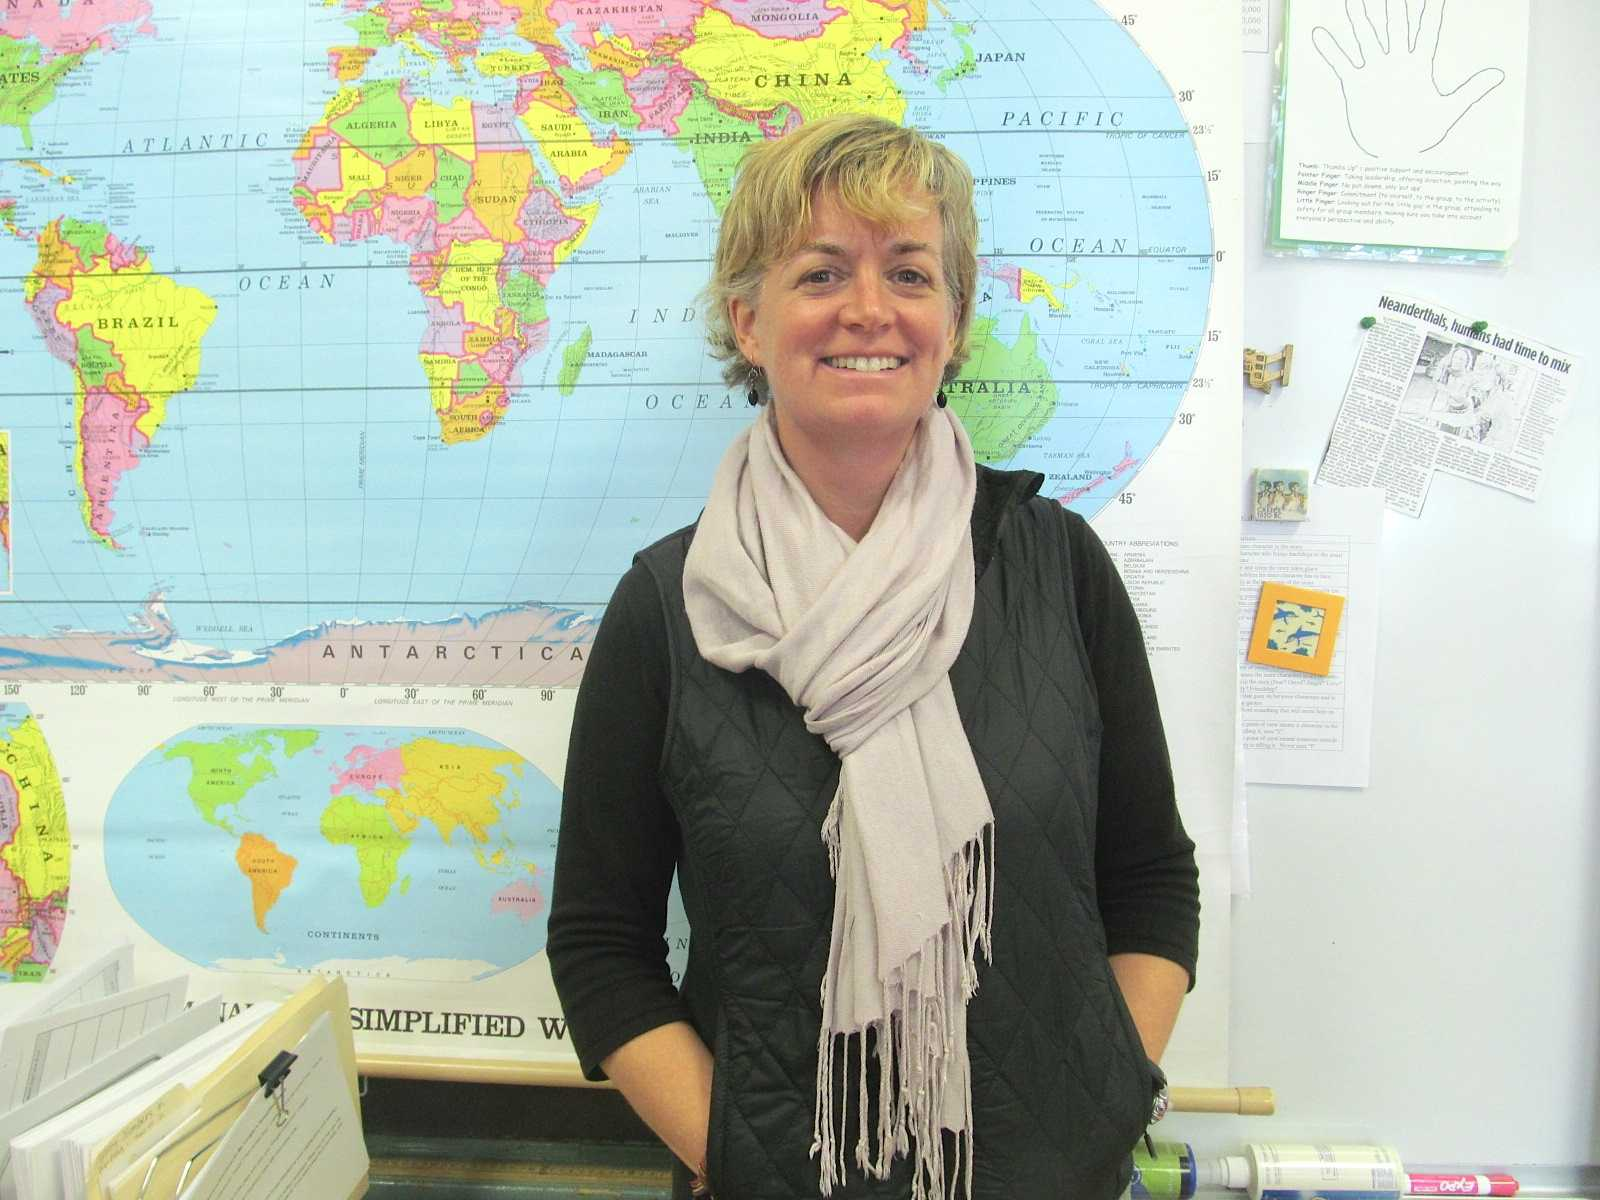 Watertown Middle School teacher Kerri Lorigan spent six months at the start of 2015 traveling the world with her family.